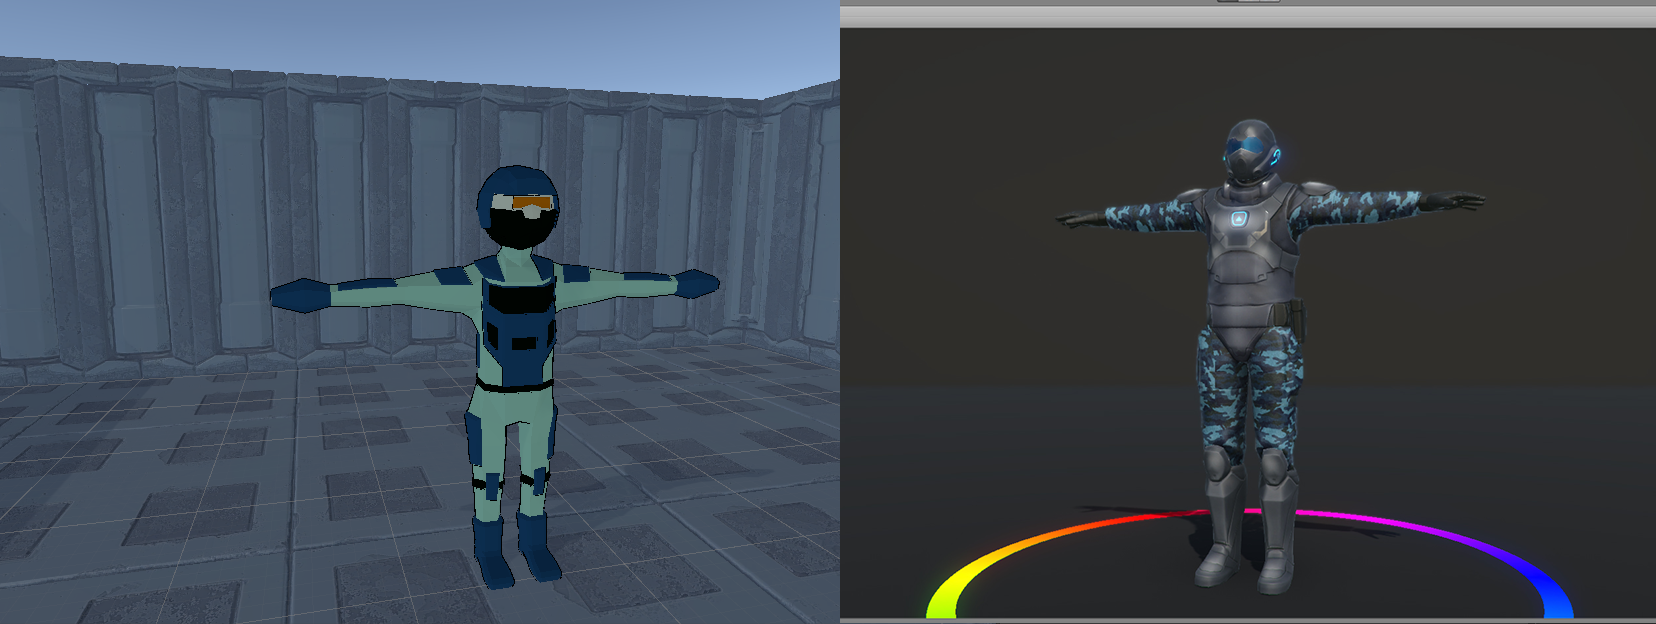 Soldier WIP   Before and After